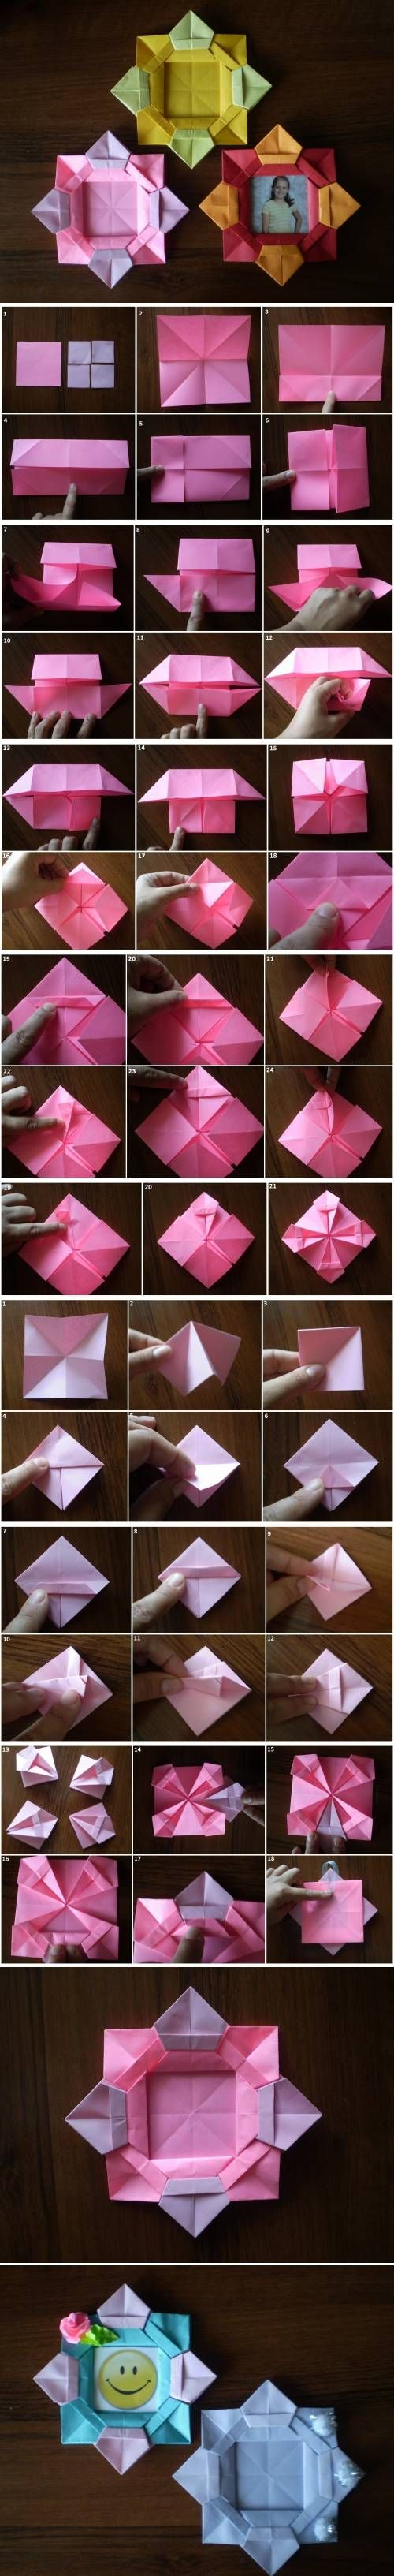 DIY Origami Flower Picture Frame DIY Projects